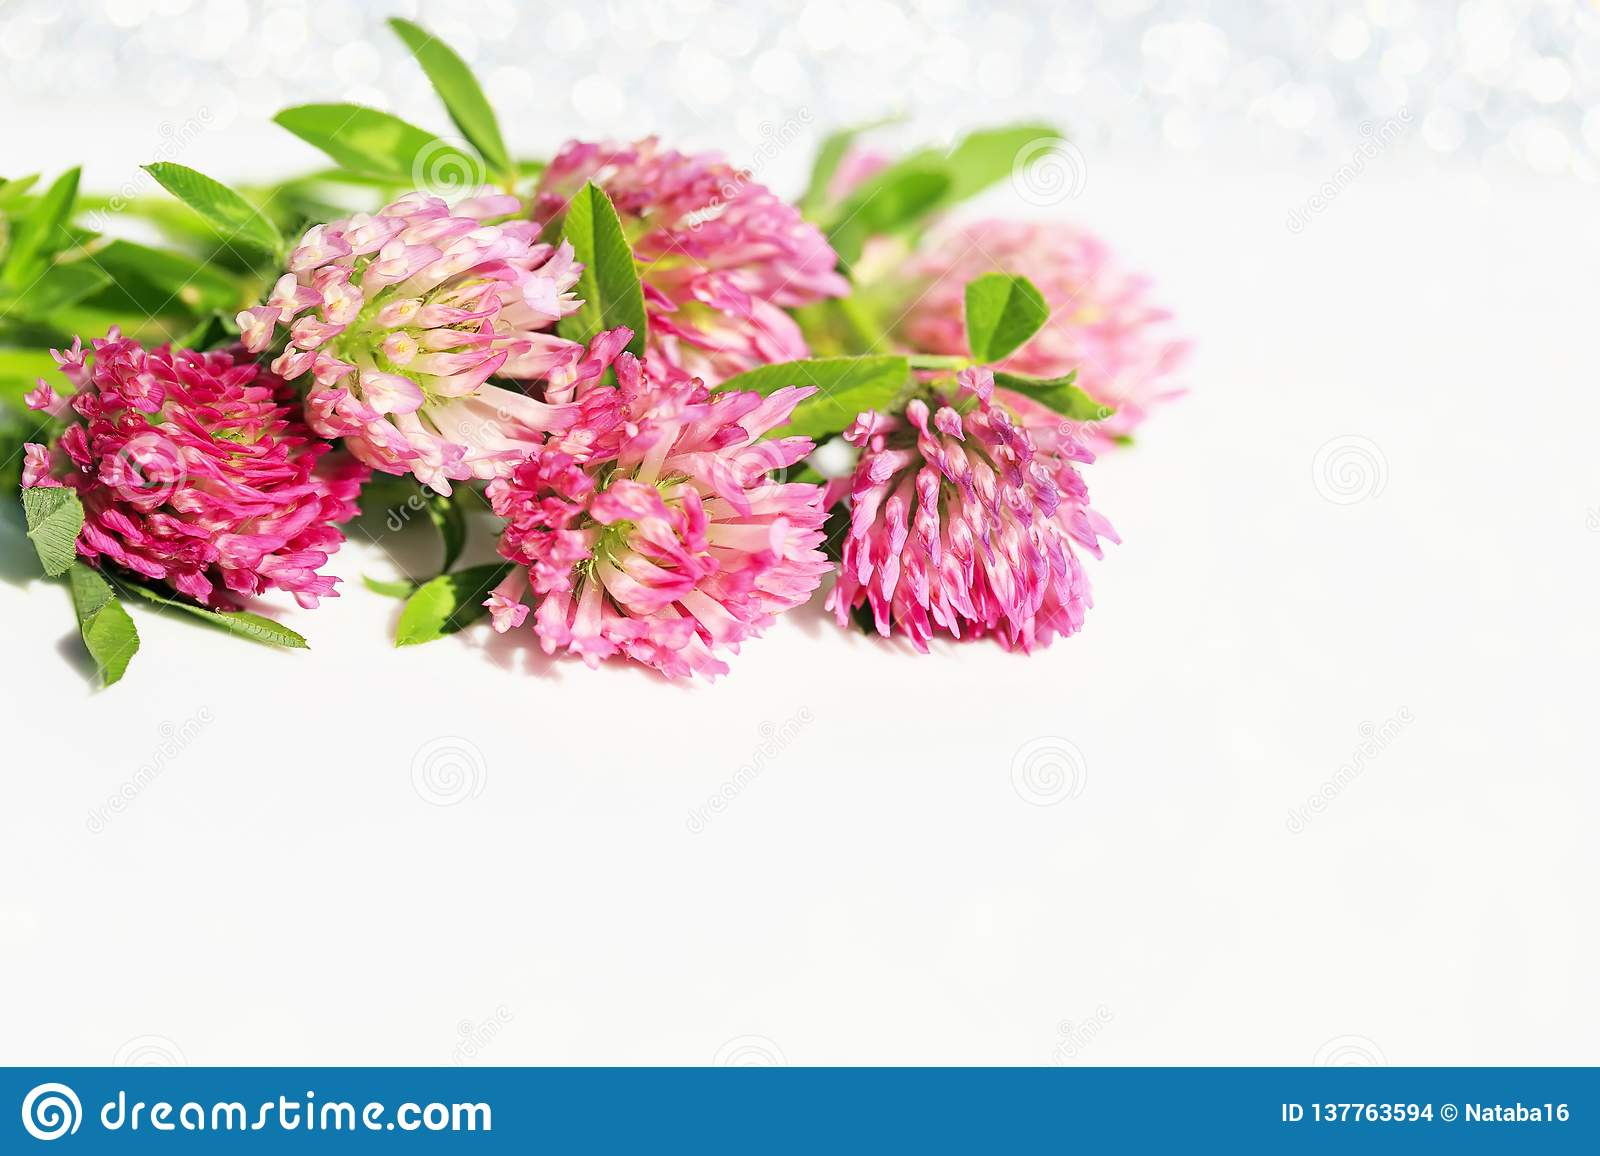 Beautiful bright pink clover flowers on white festive shiny background